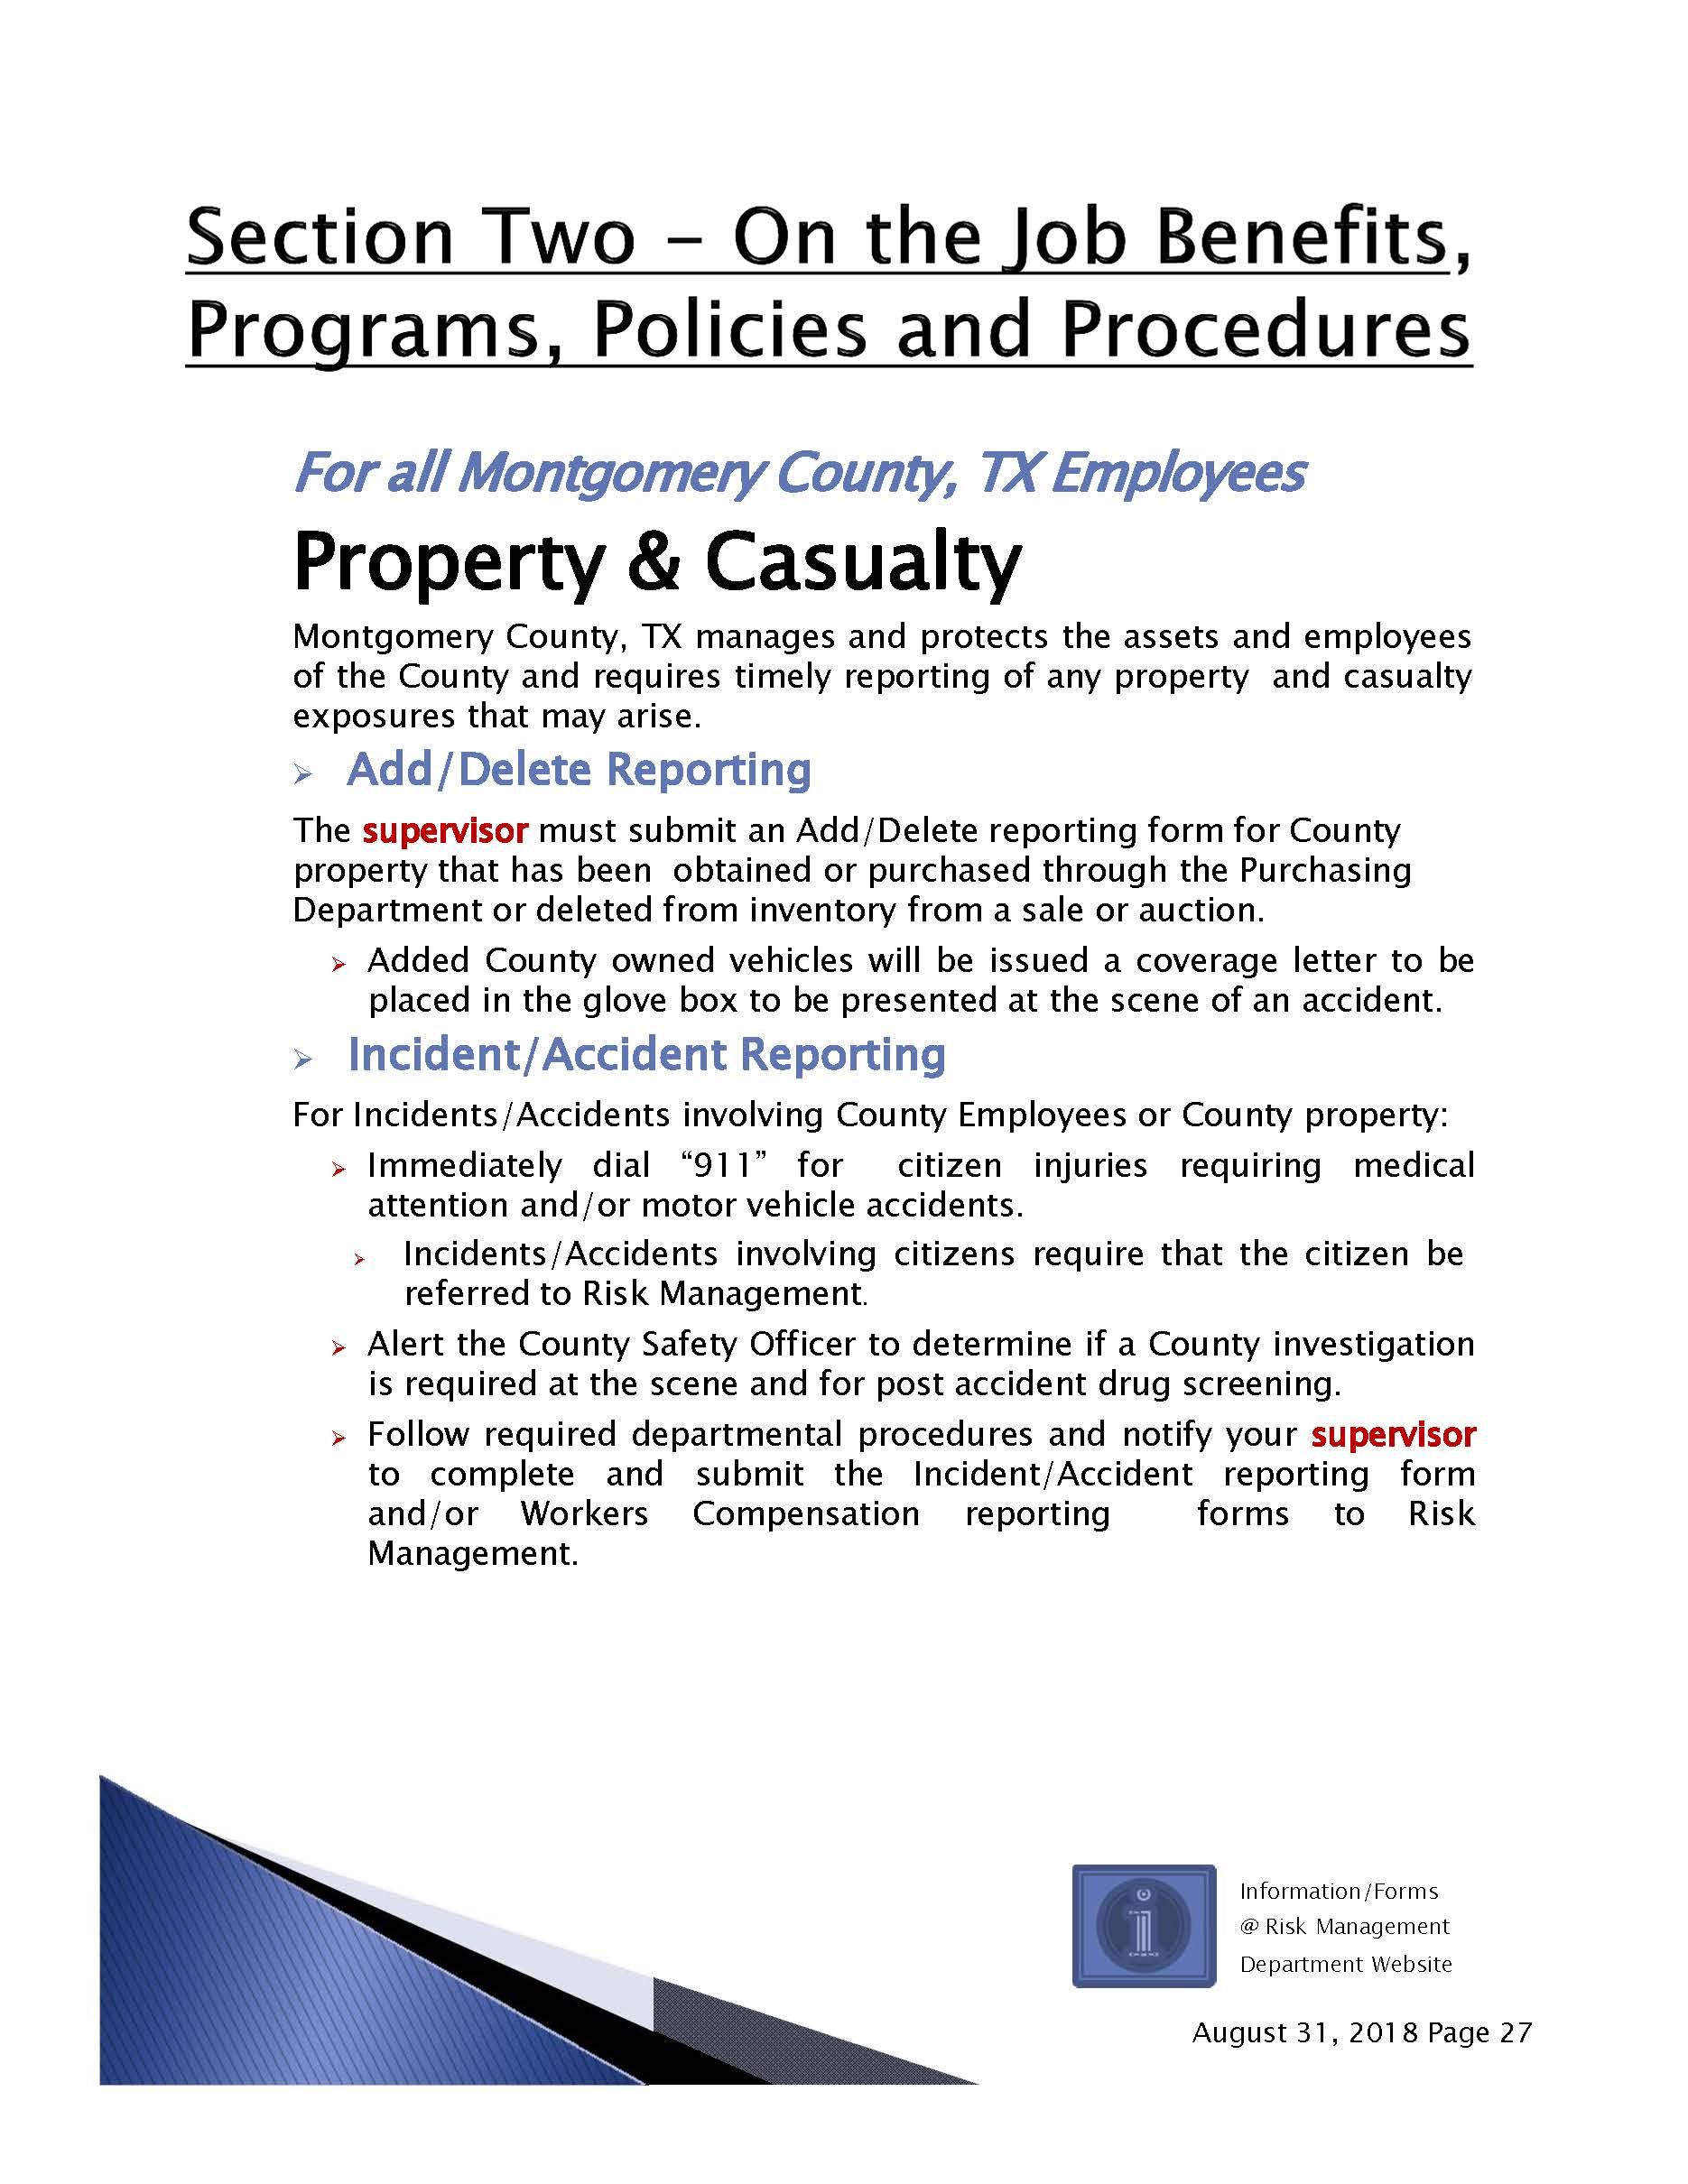 Property, Casualty and Liability Program